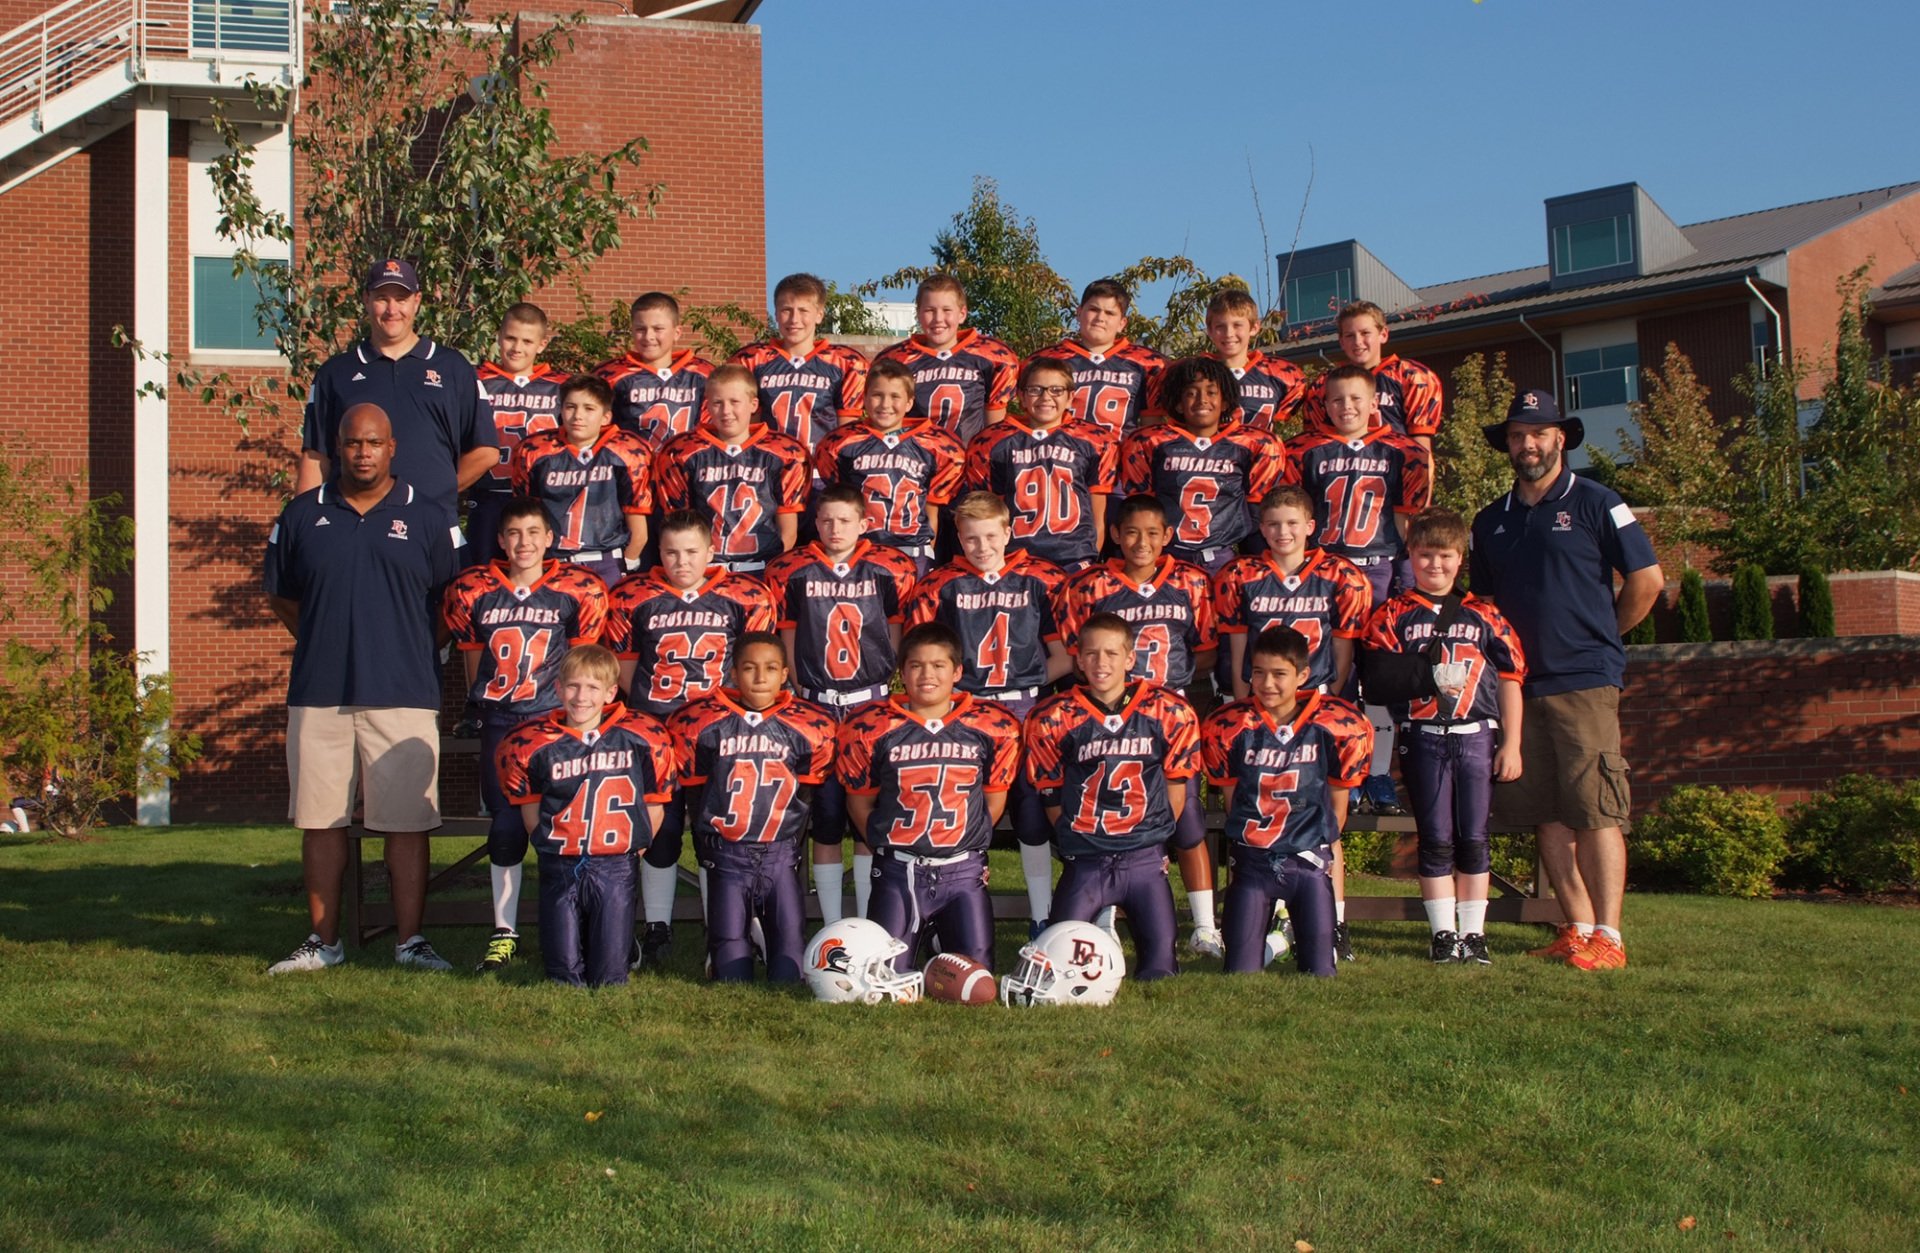 BANTAMS 2014